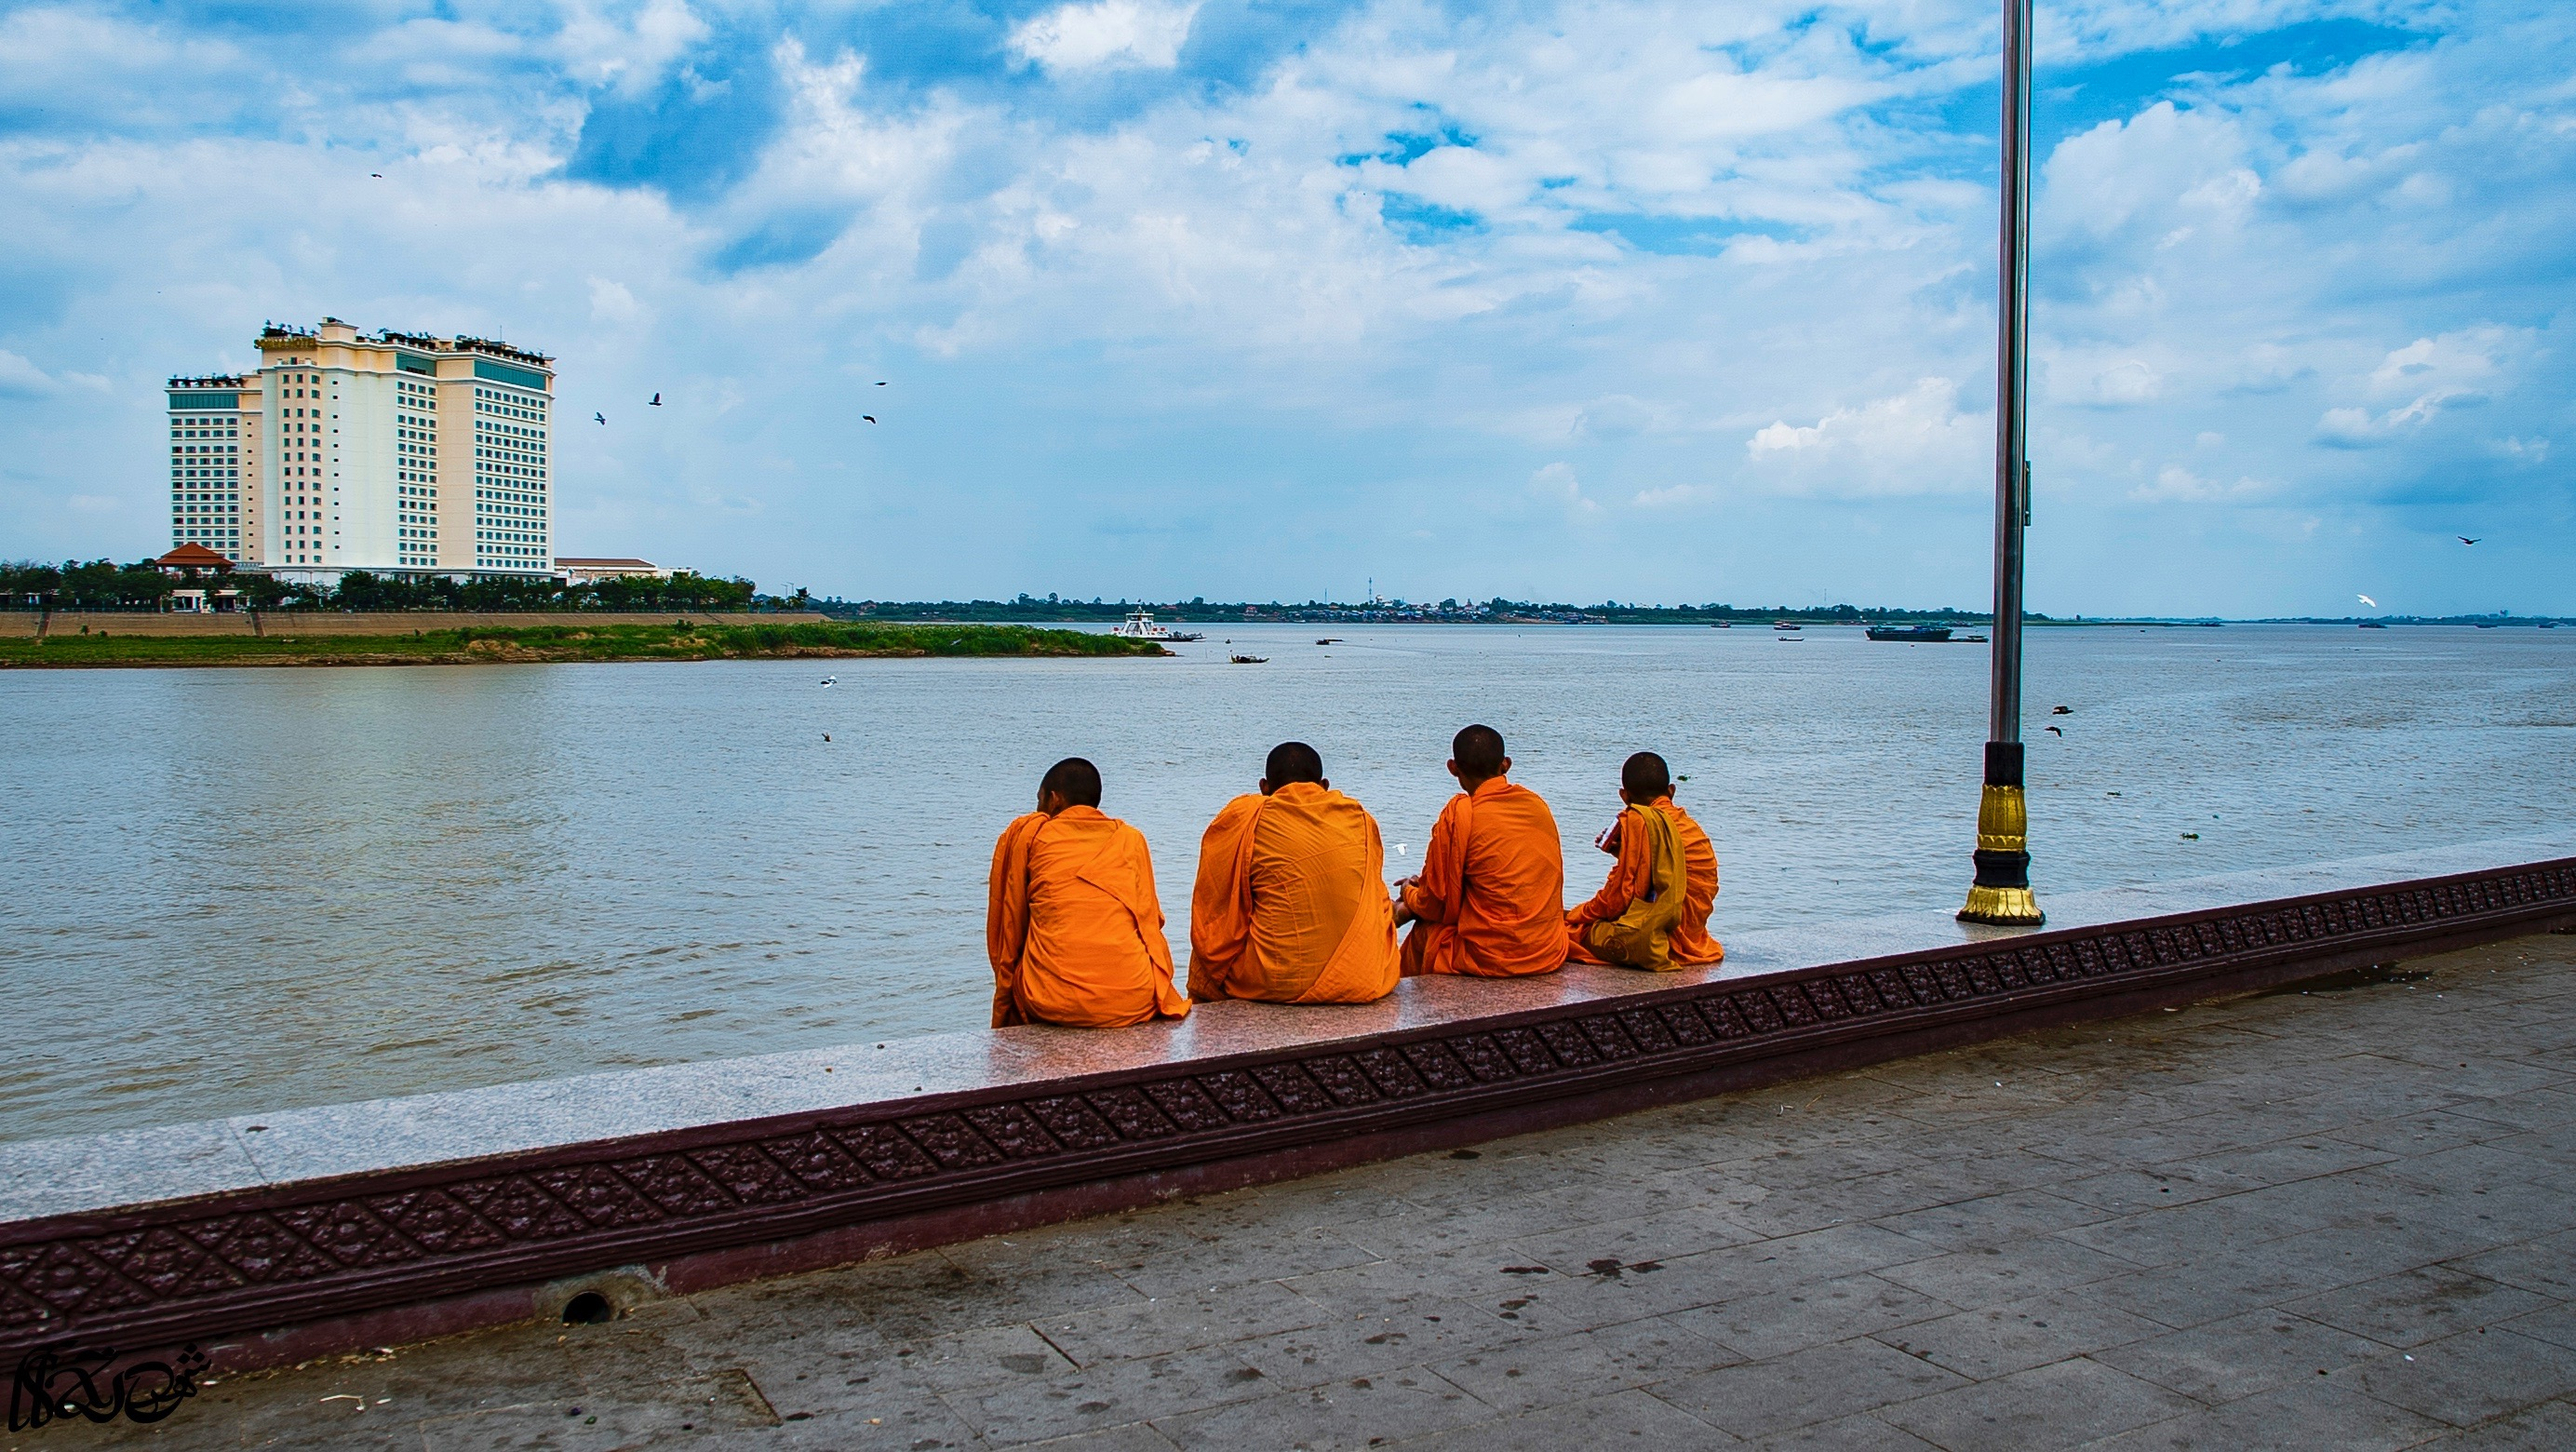 Monks Just being Monks